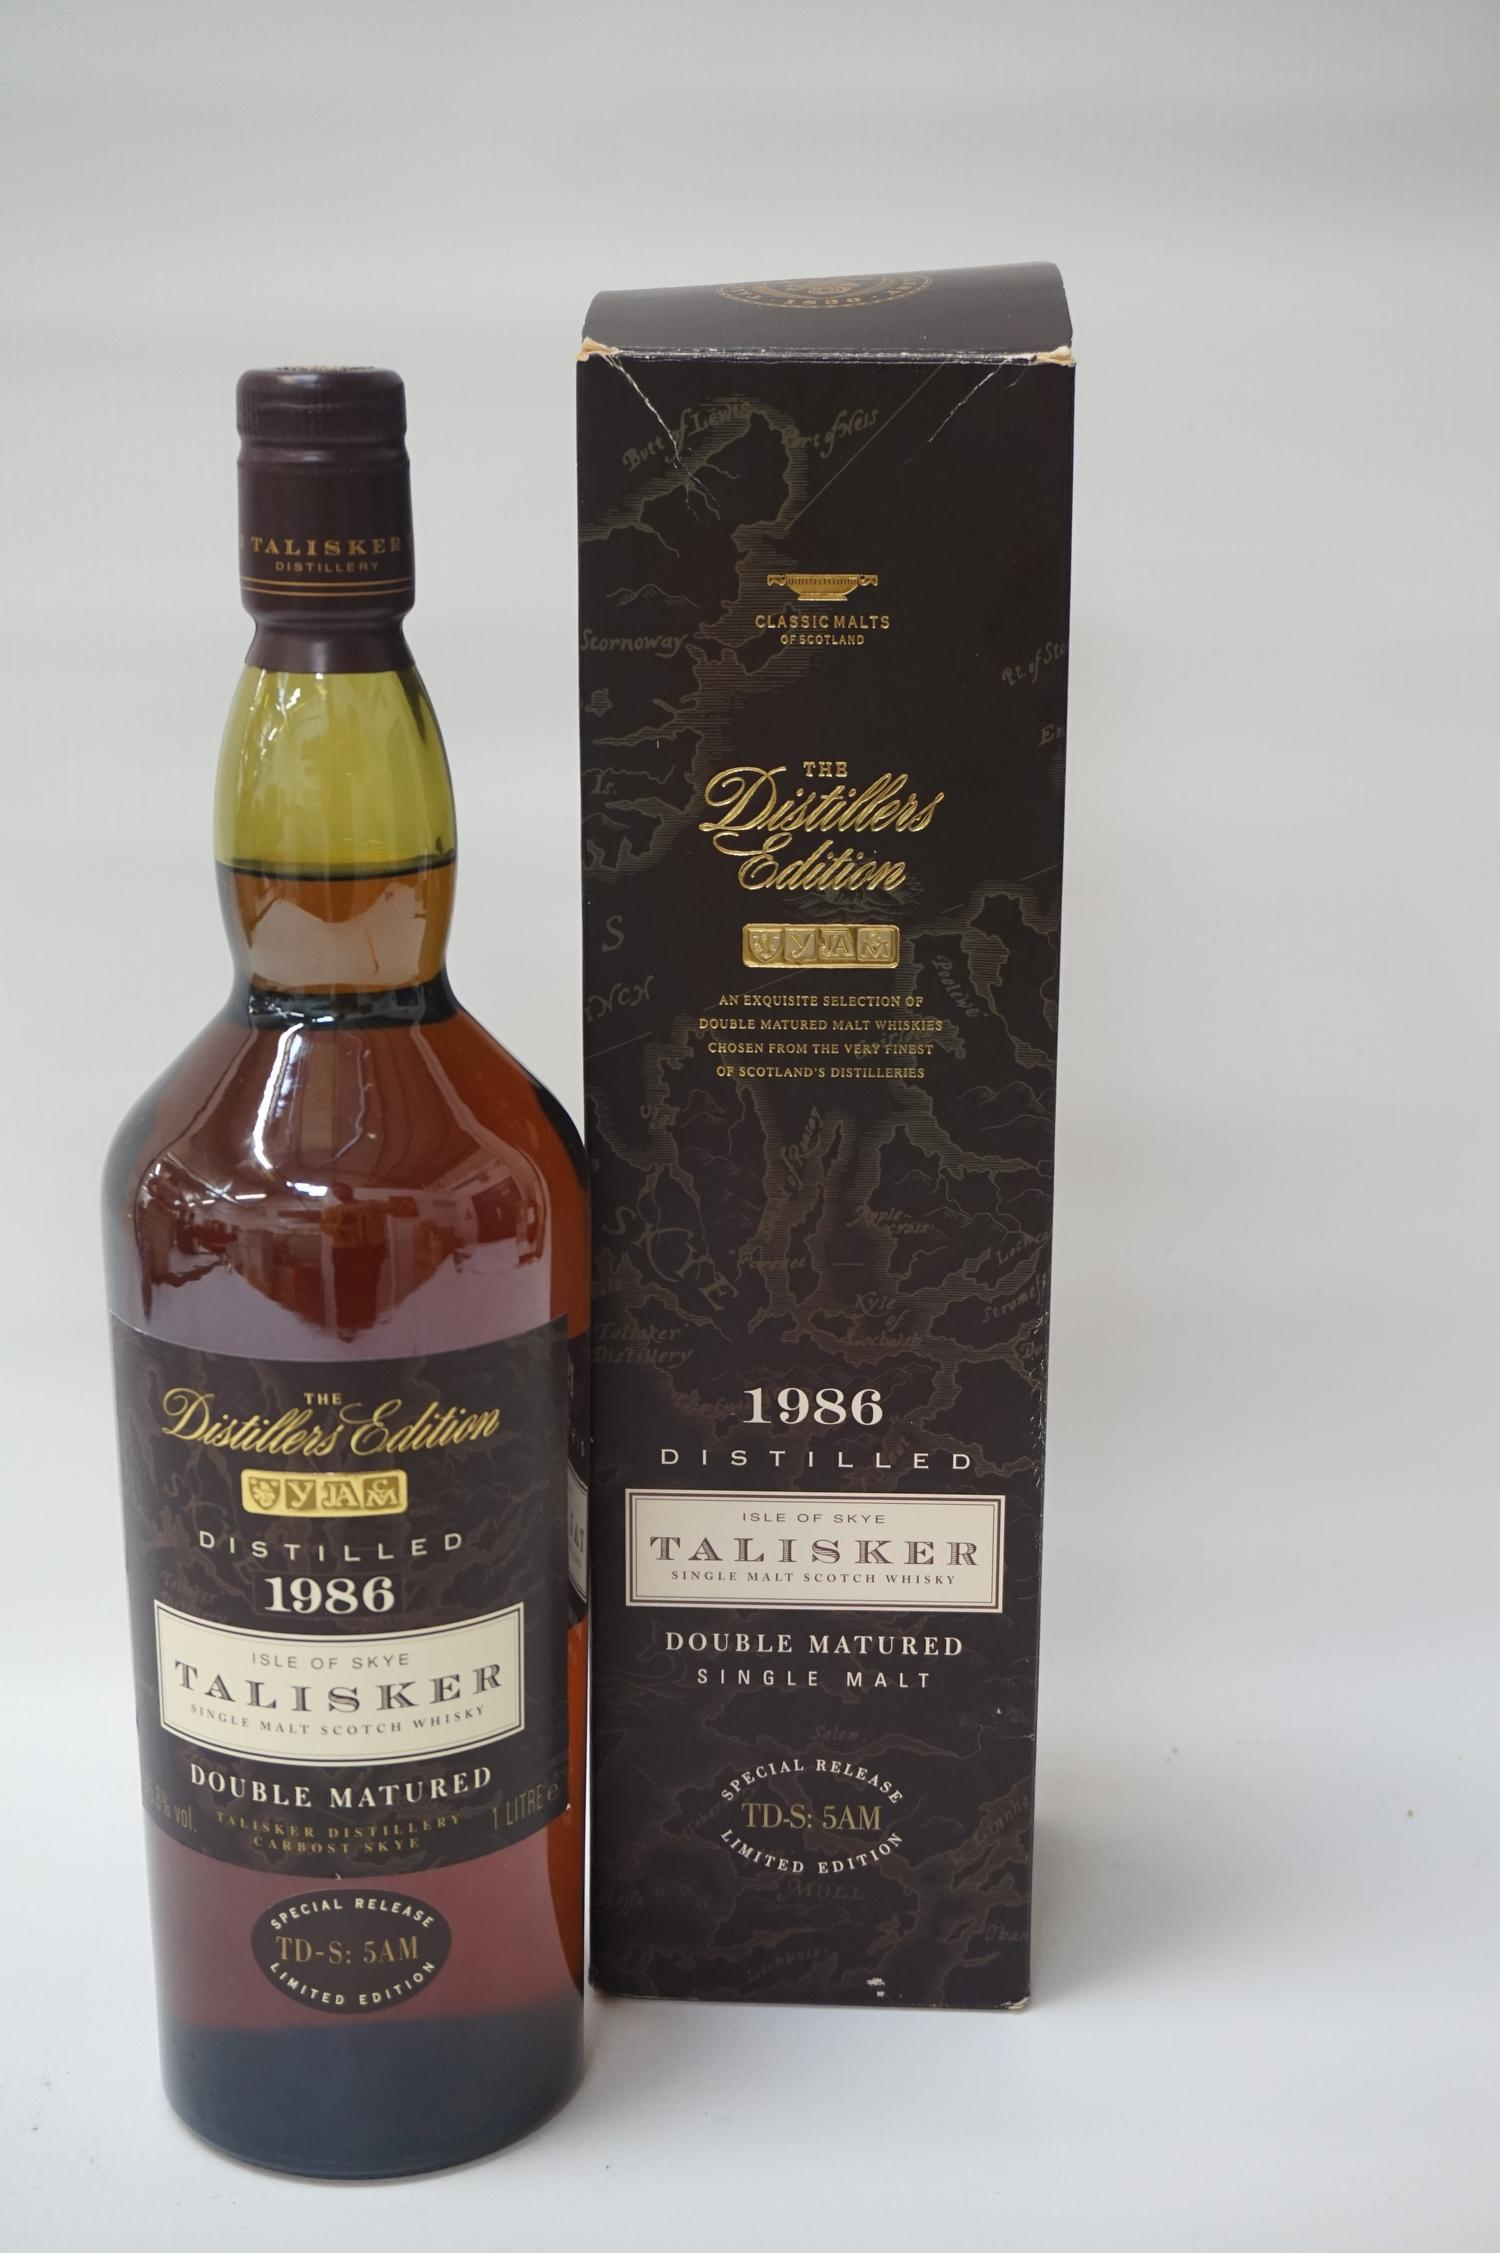 Lot 27 - TALISKER DISTILLERS EDITION 1986 This bottle highlights how finishing a whisky in particular casks